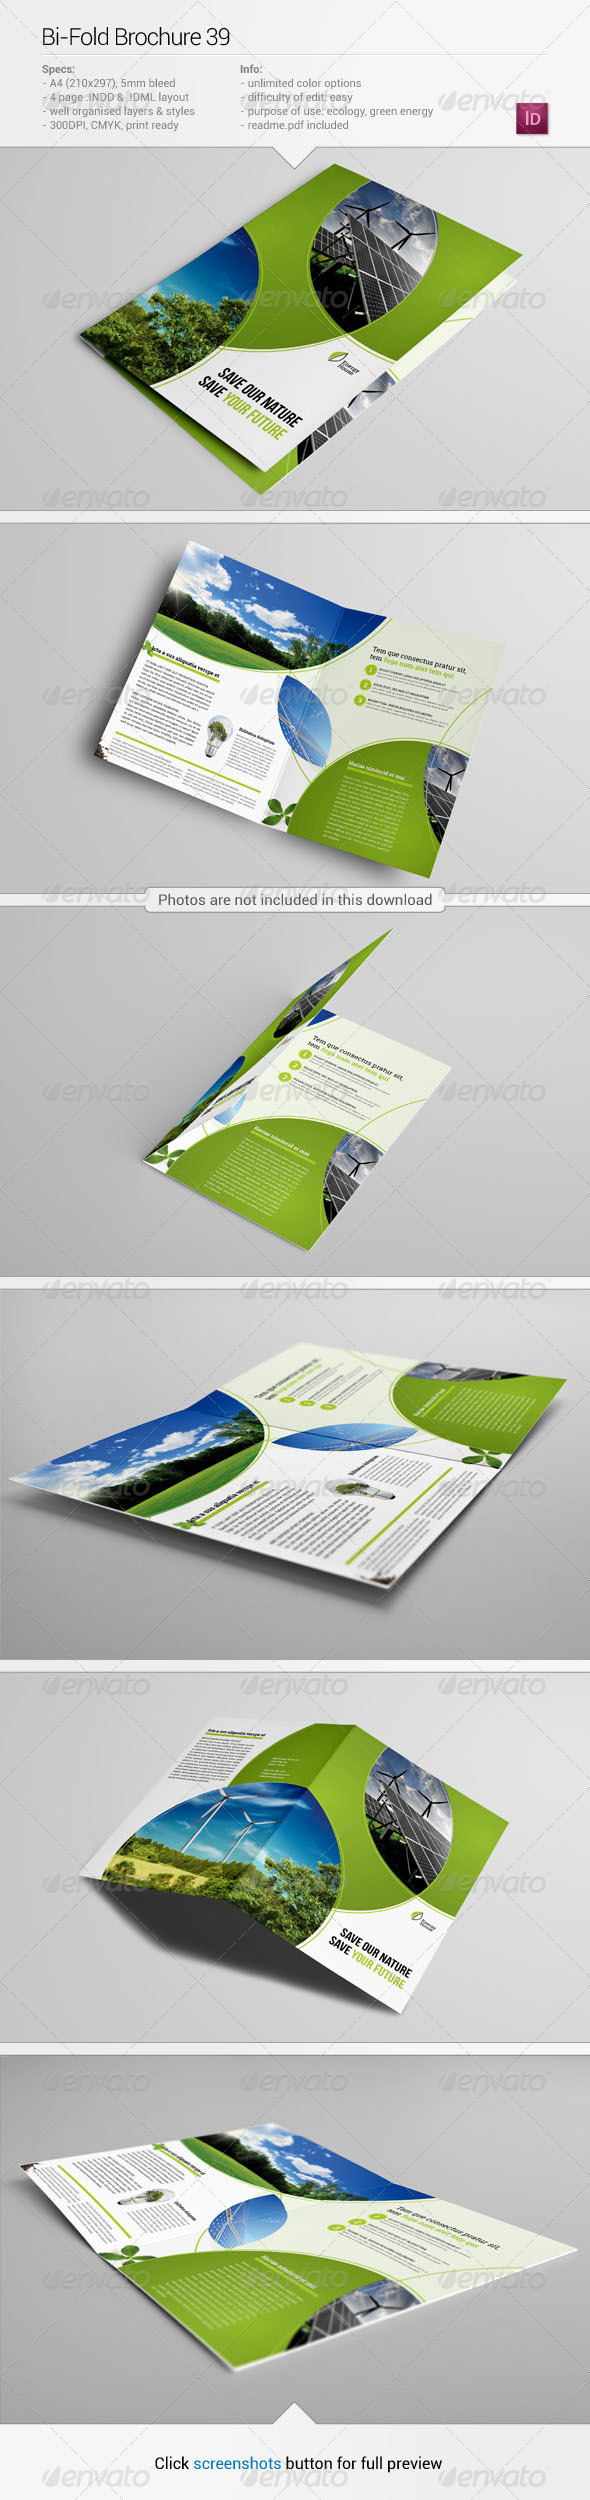 GraphicRiver Bi-Fold Brochure 39 6145980